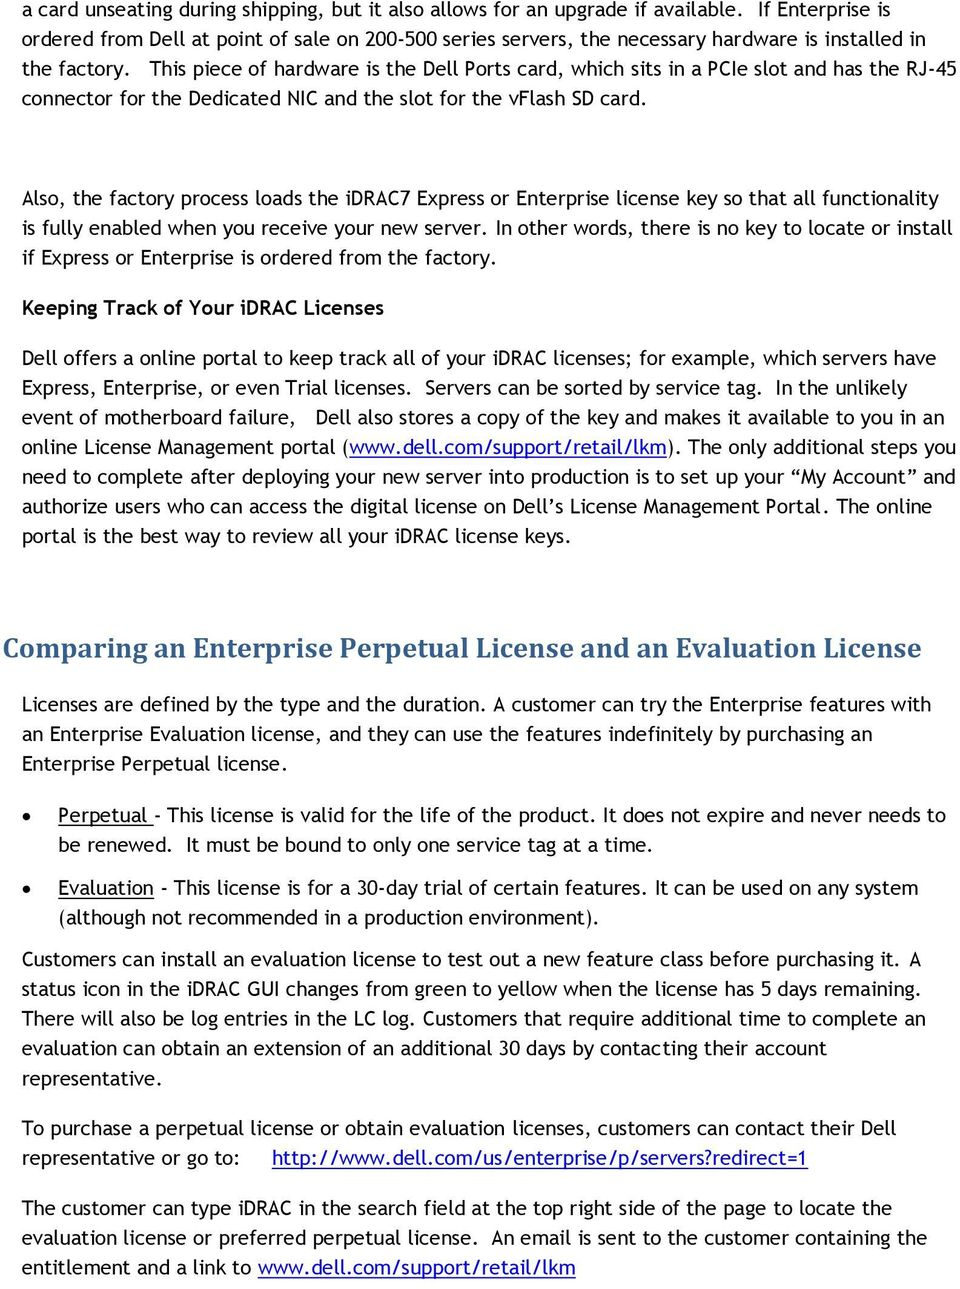 idrac7 Licensing Dell Technical White Paper Dell Enterprise